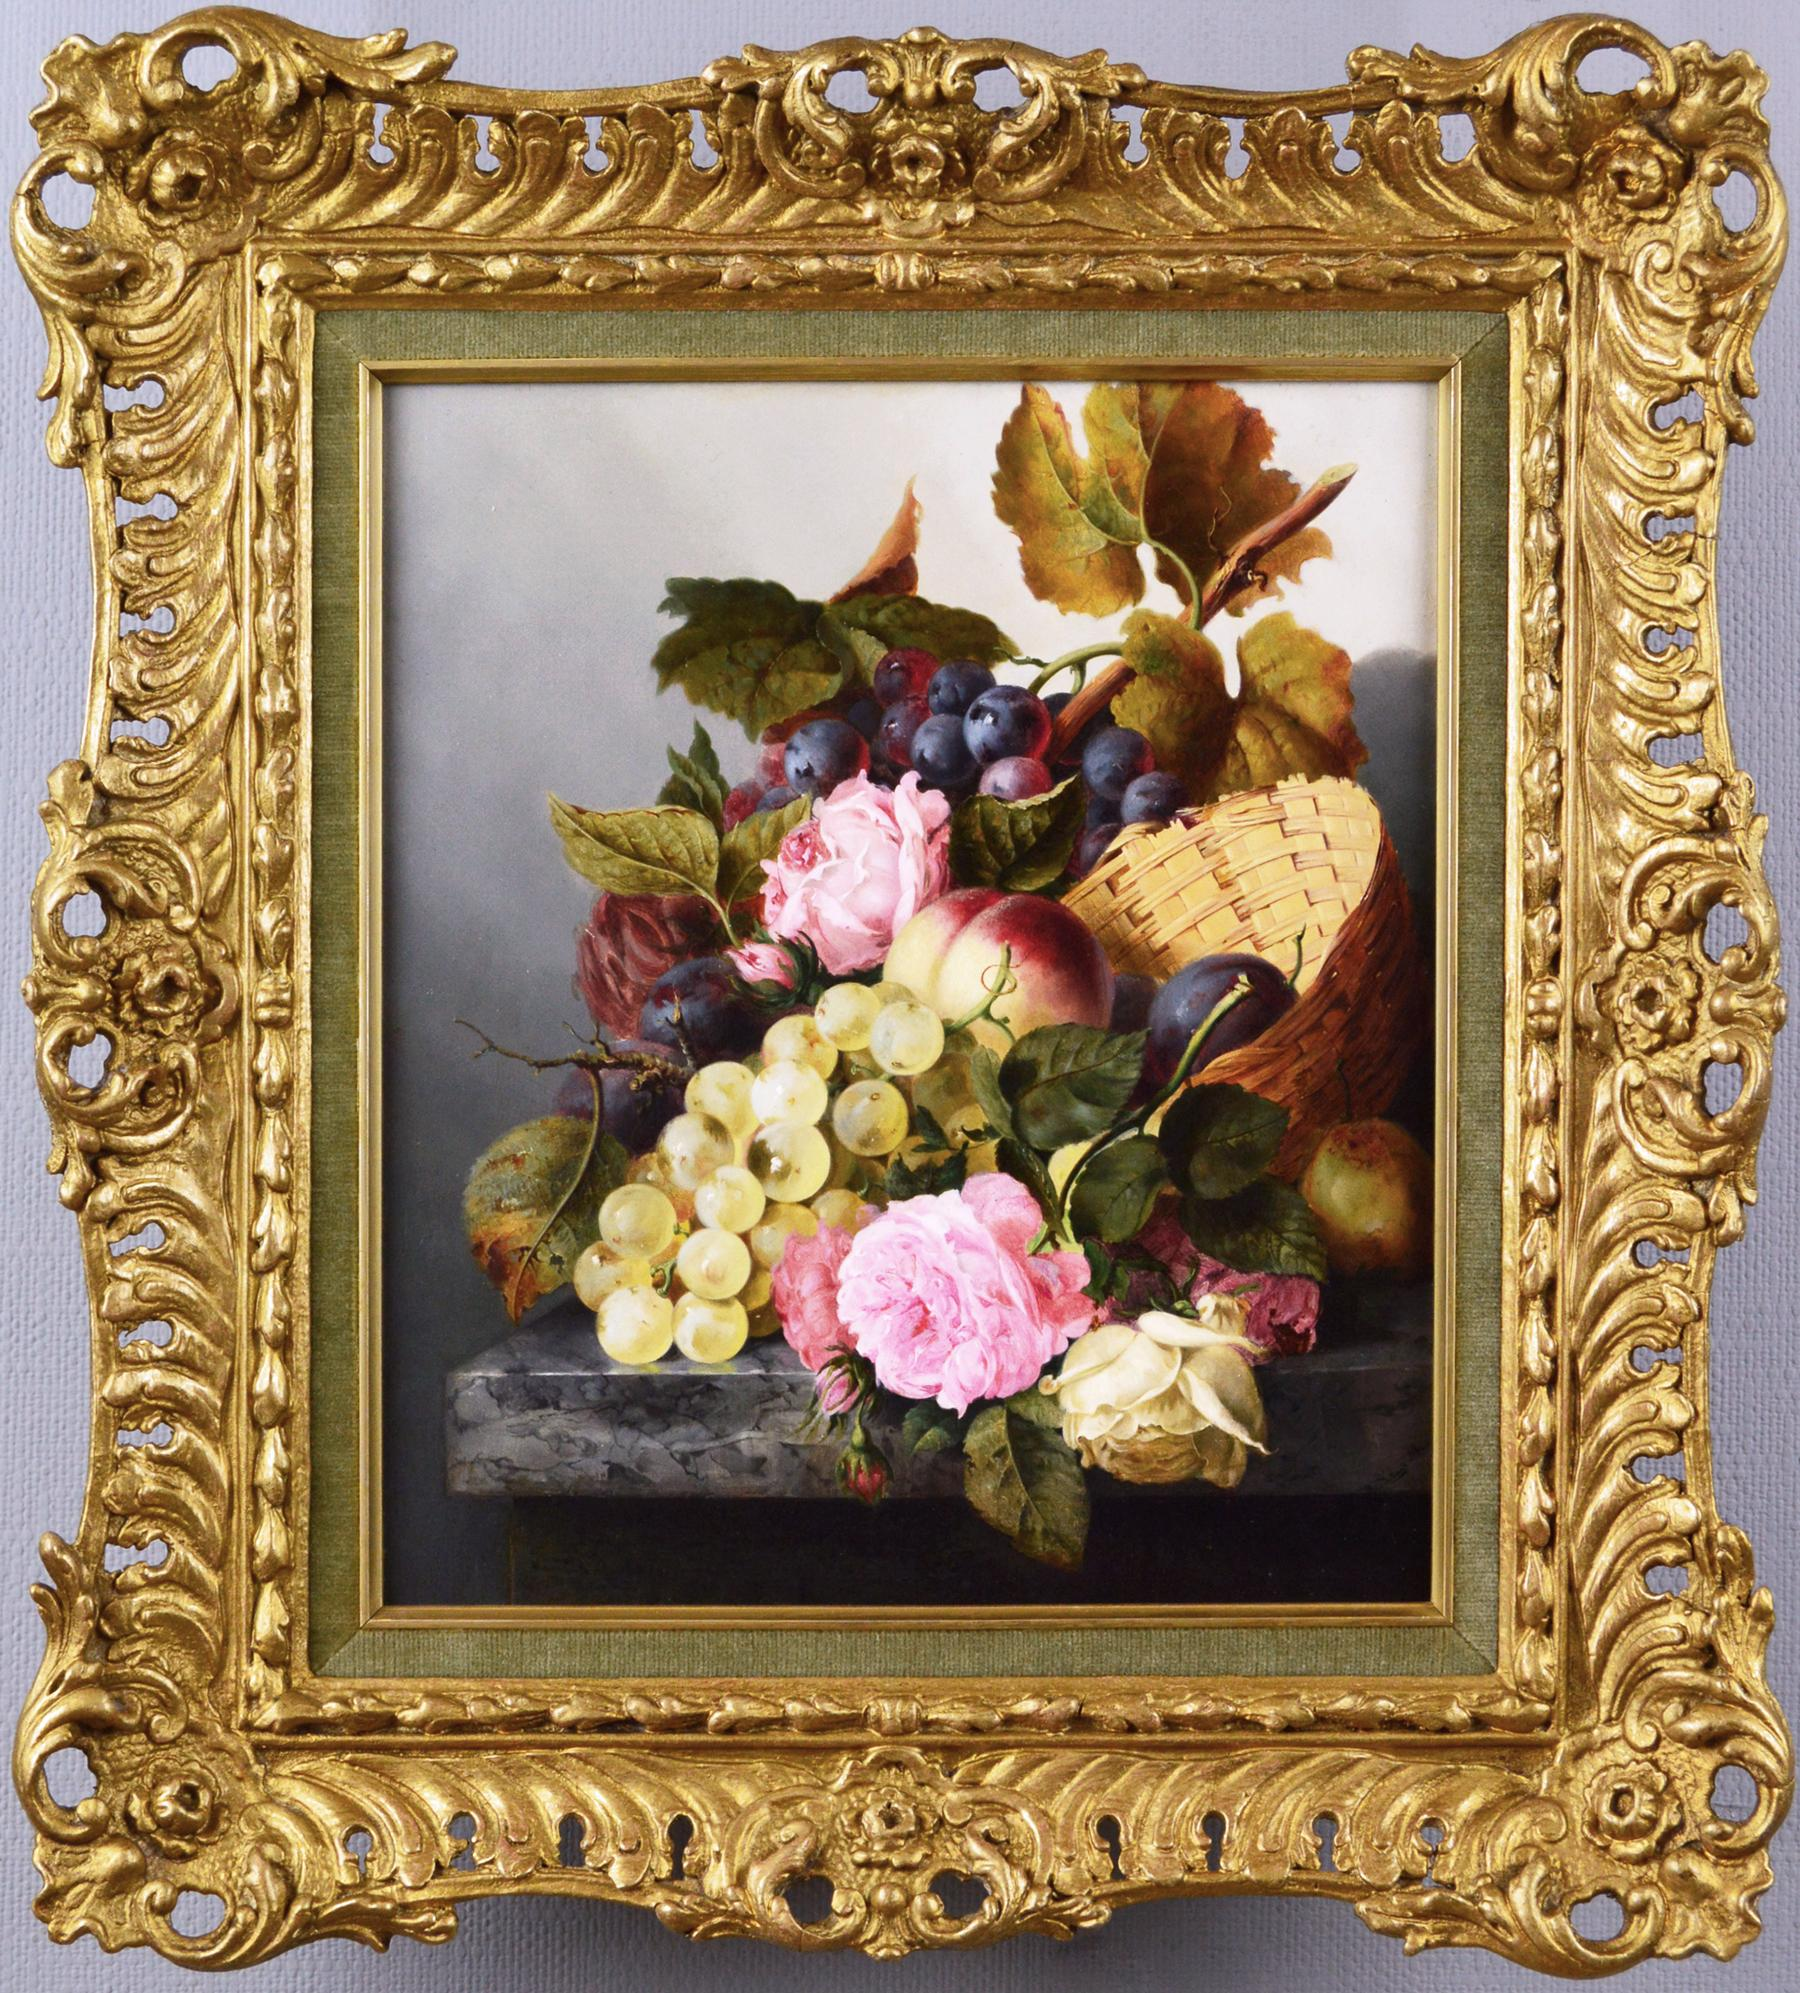 19th Century still life oil painting of fruit & flowers